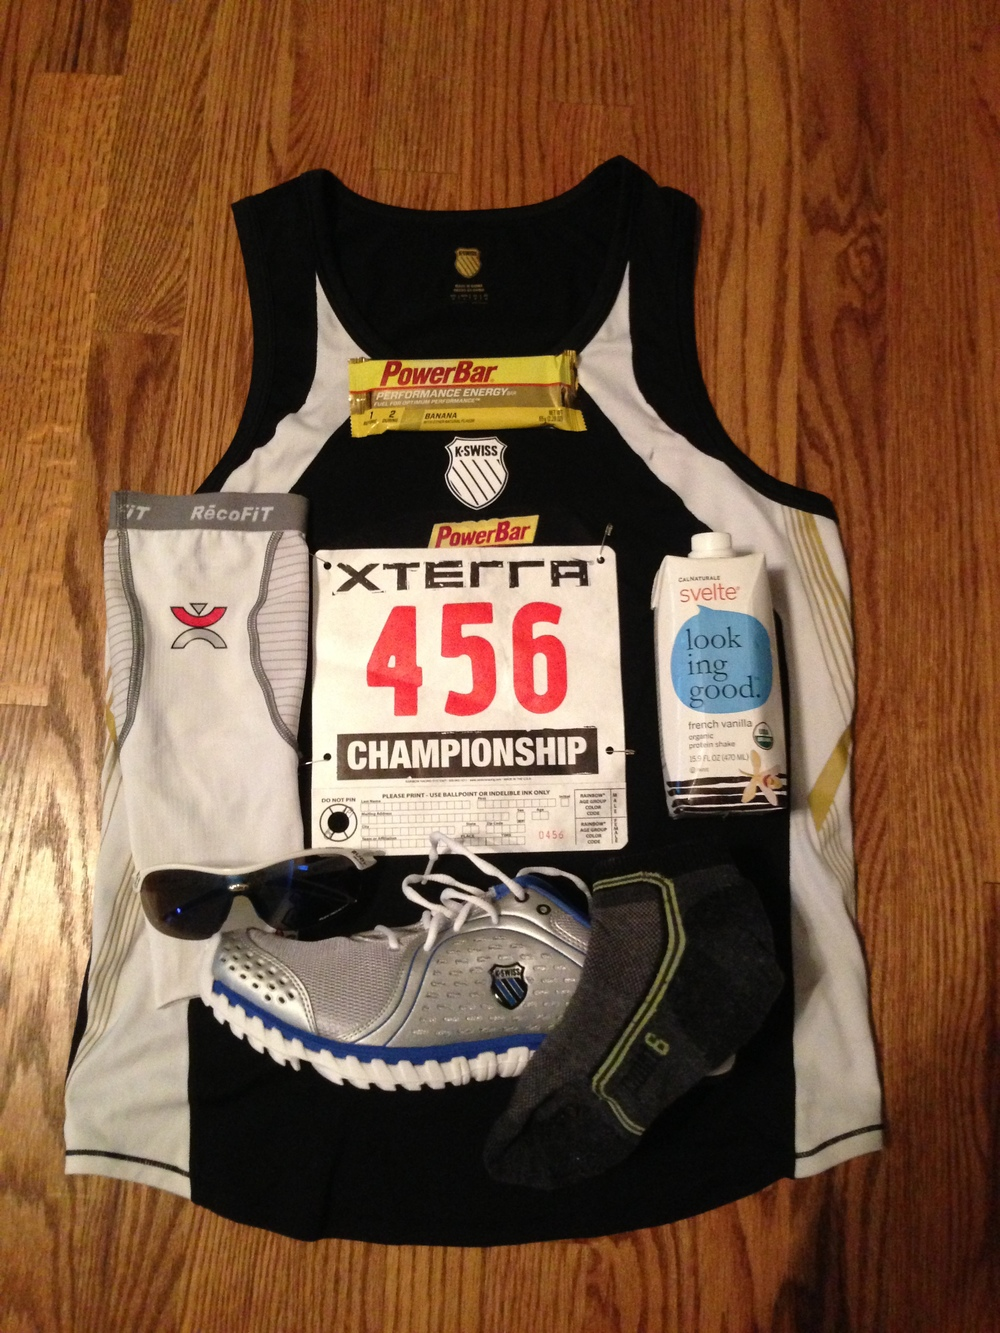 Race Kit, locked & loaded!